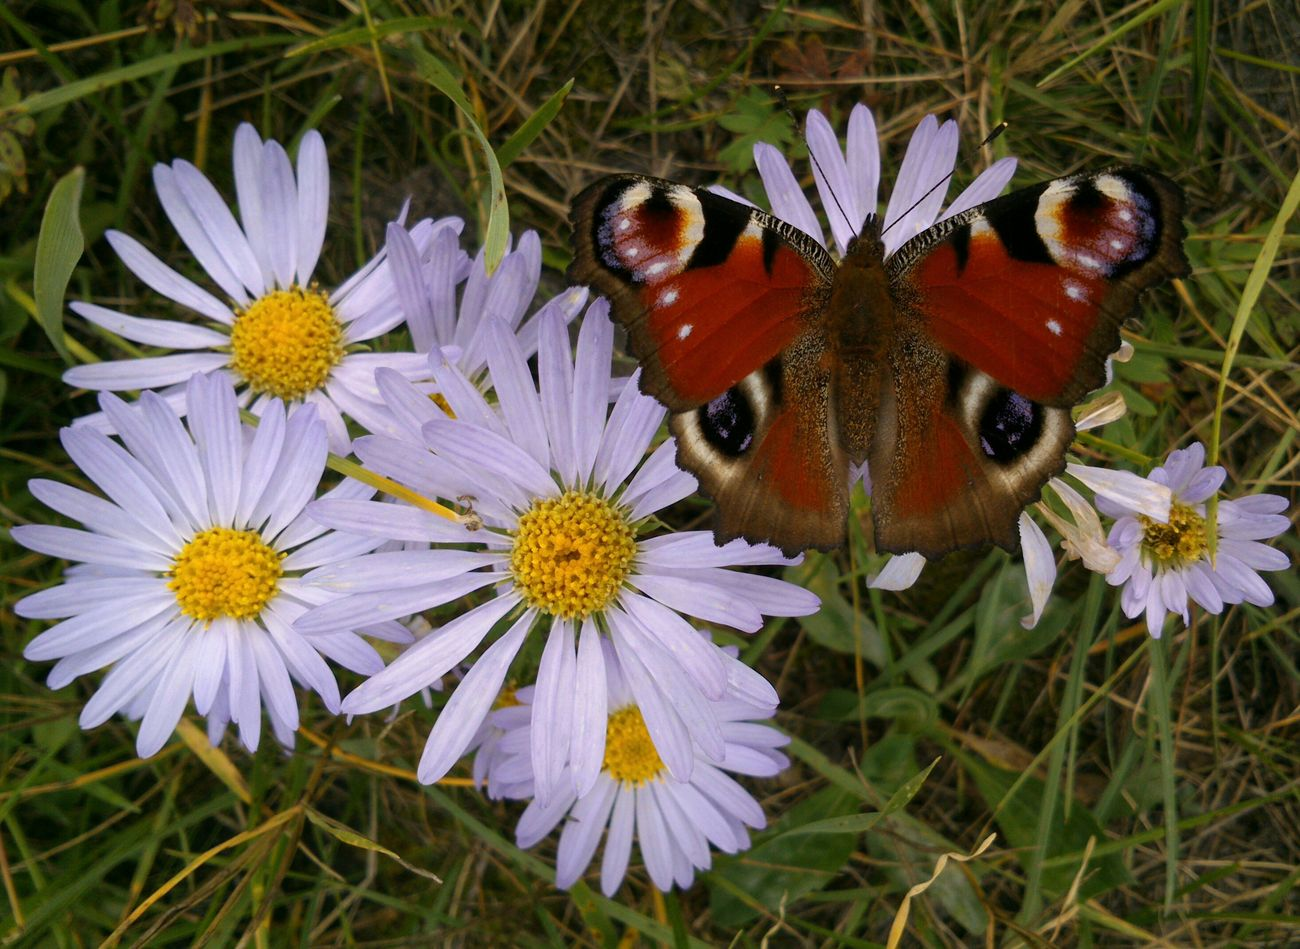 There's no any photo editing. Без фоторедактирования. павлиний глаз и Ромашки. The Emperor Moth on the blue Camomiles. Chamomiles Ox-eye Daisies Butterfly Papillon Papillon Paon Balancing Act